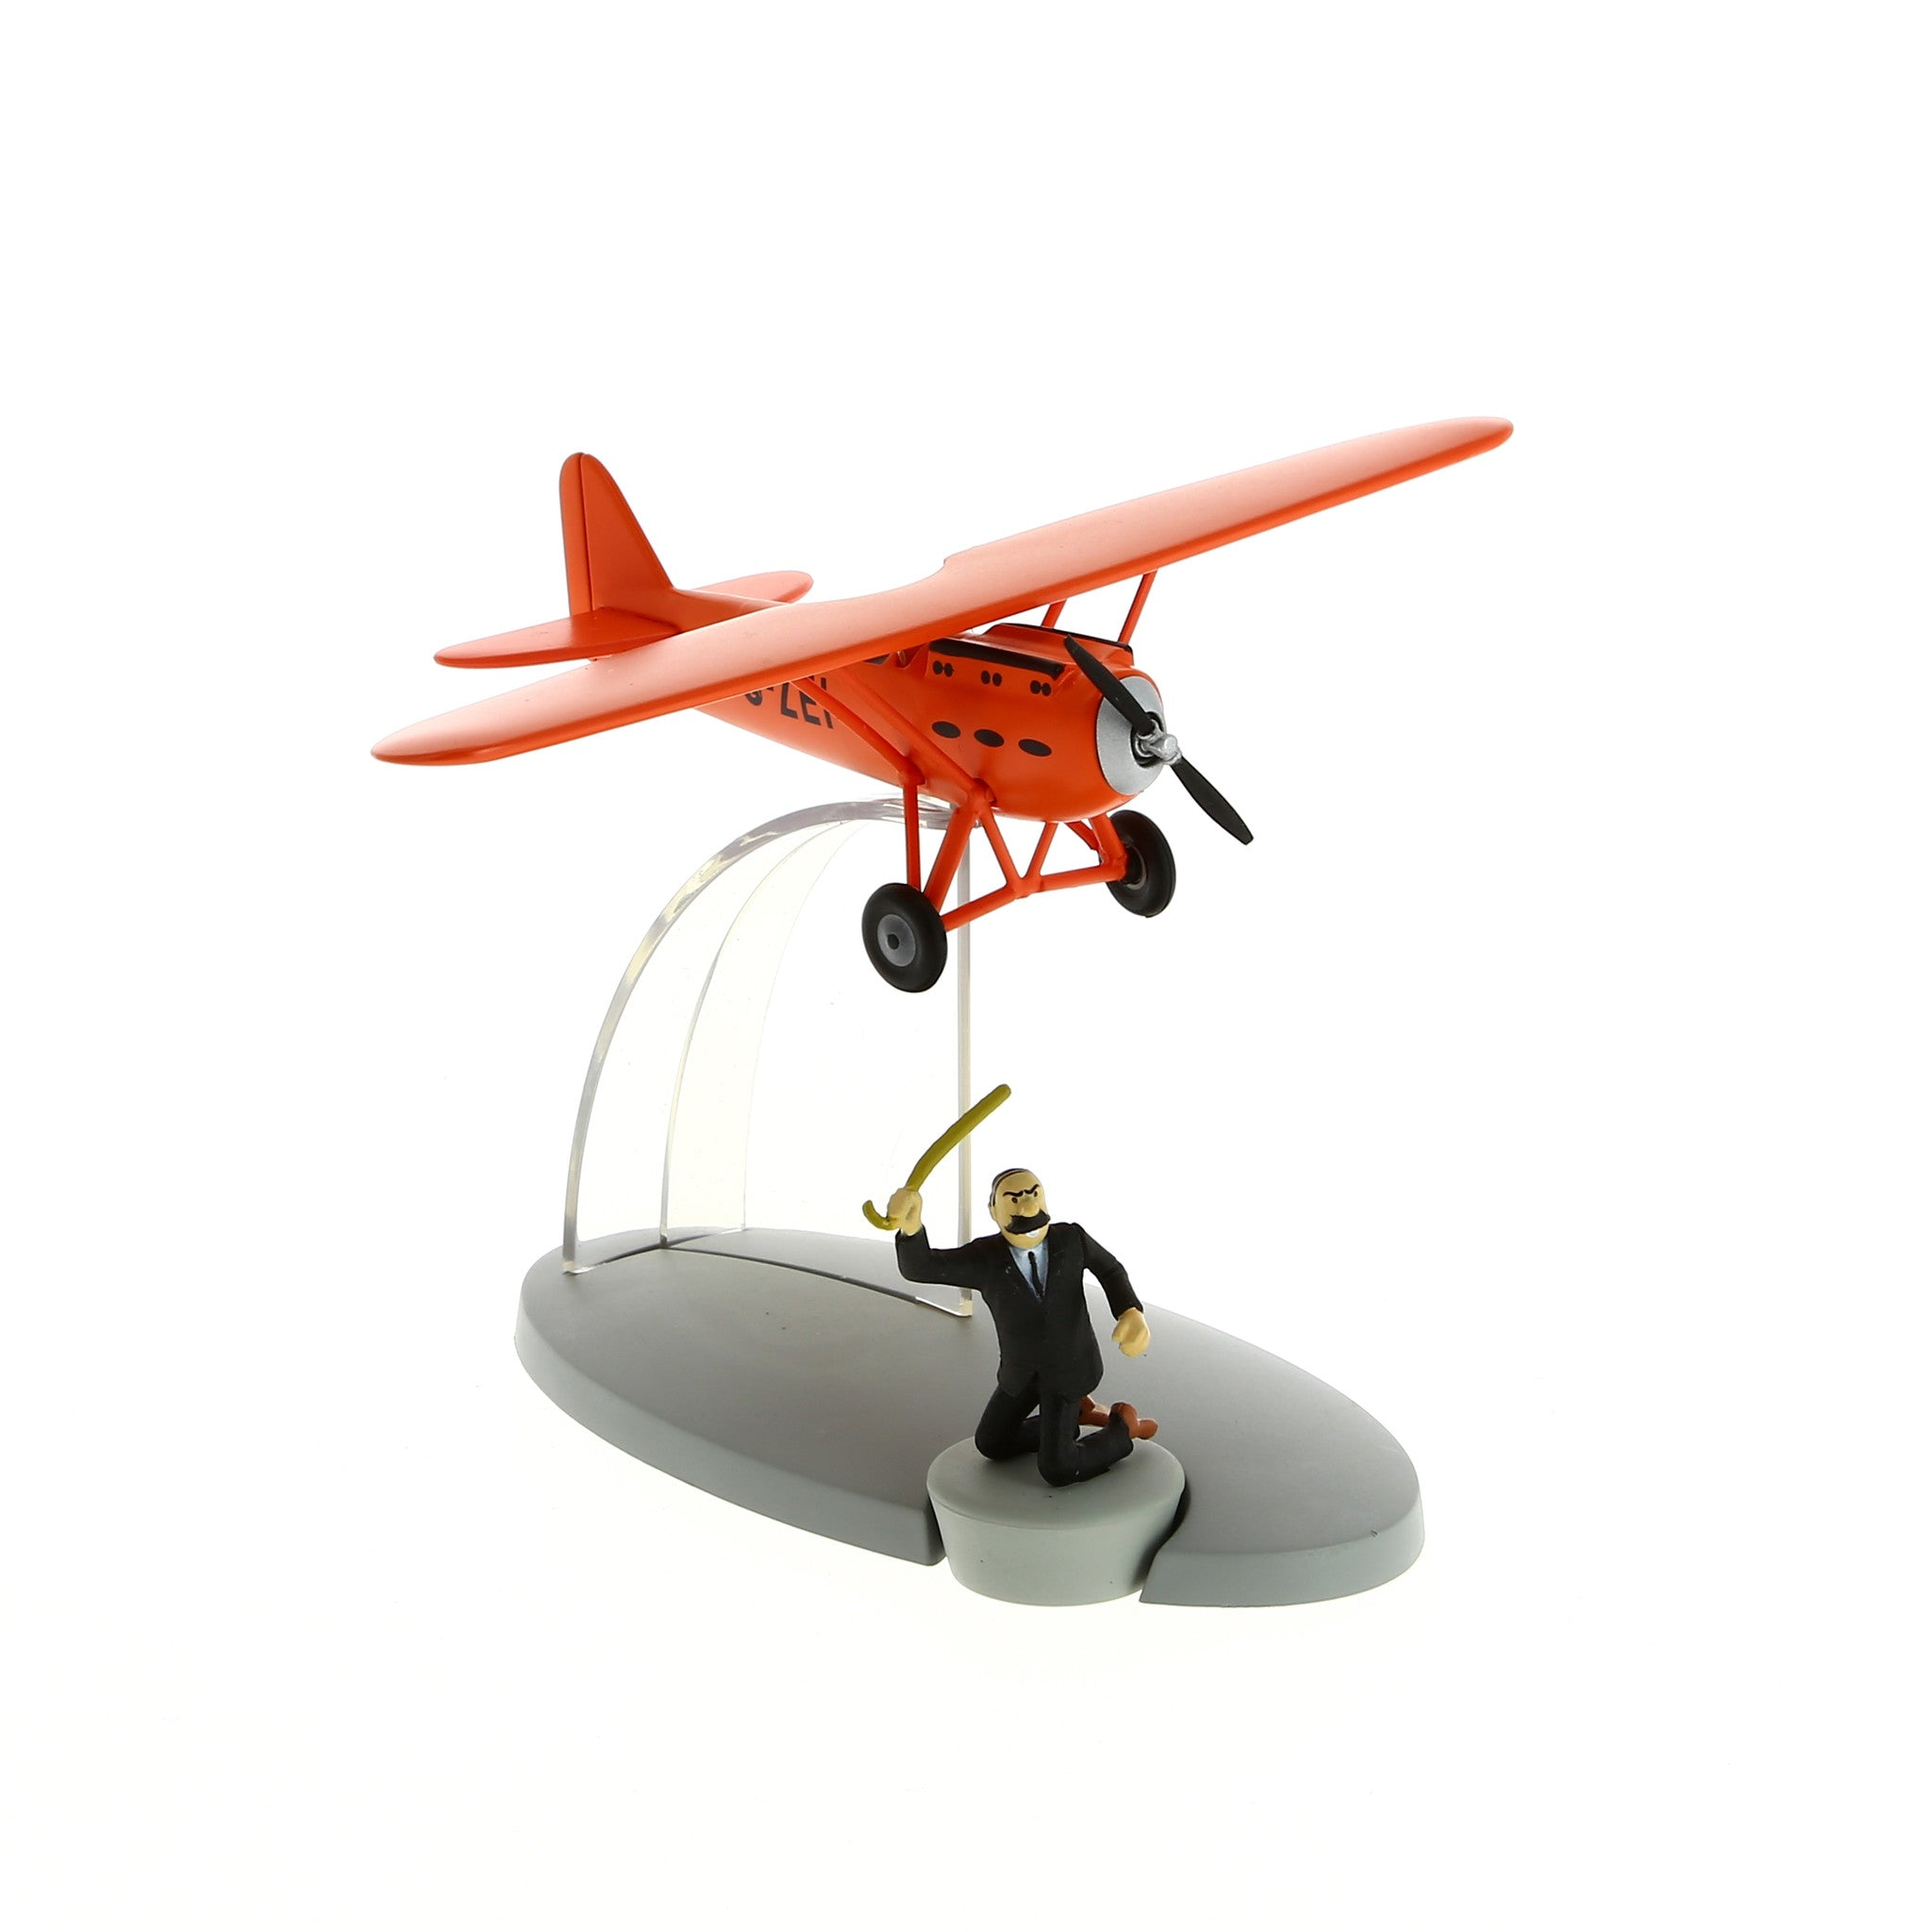 AIRCRAFT TINTIN: Muller's Red Plane #40